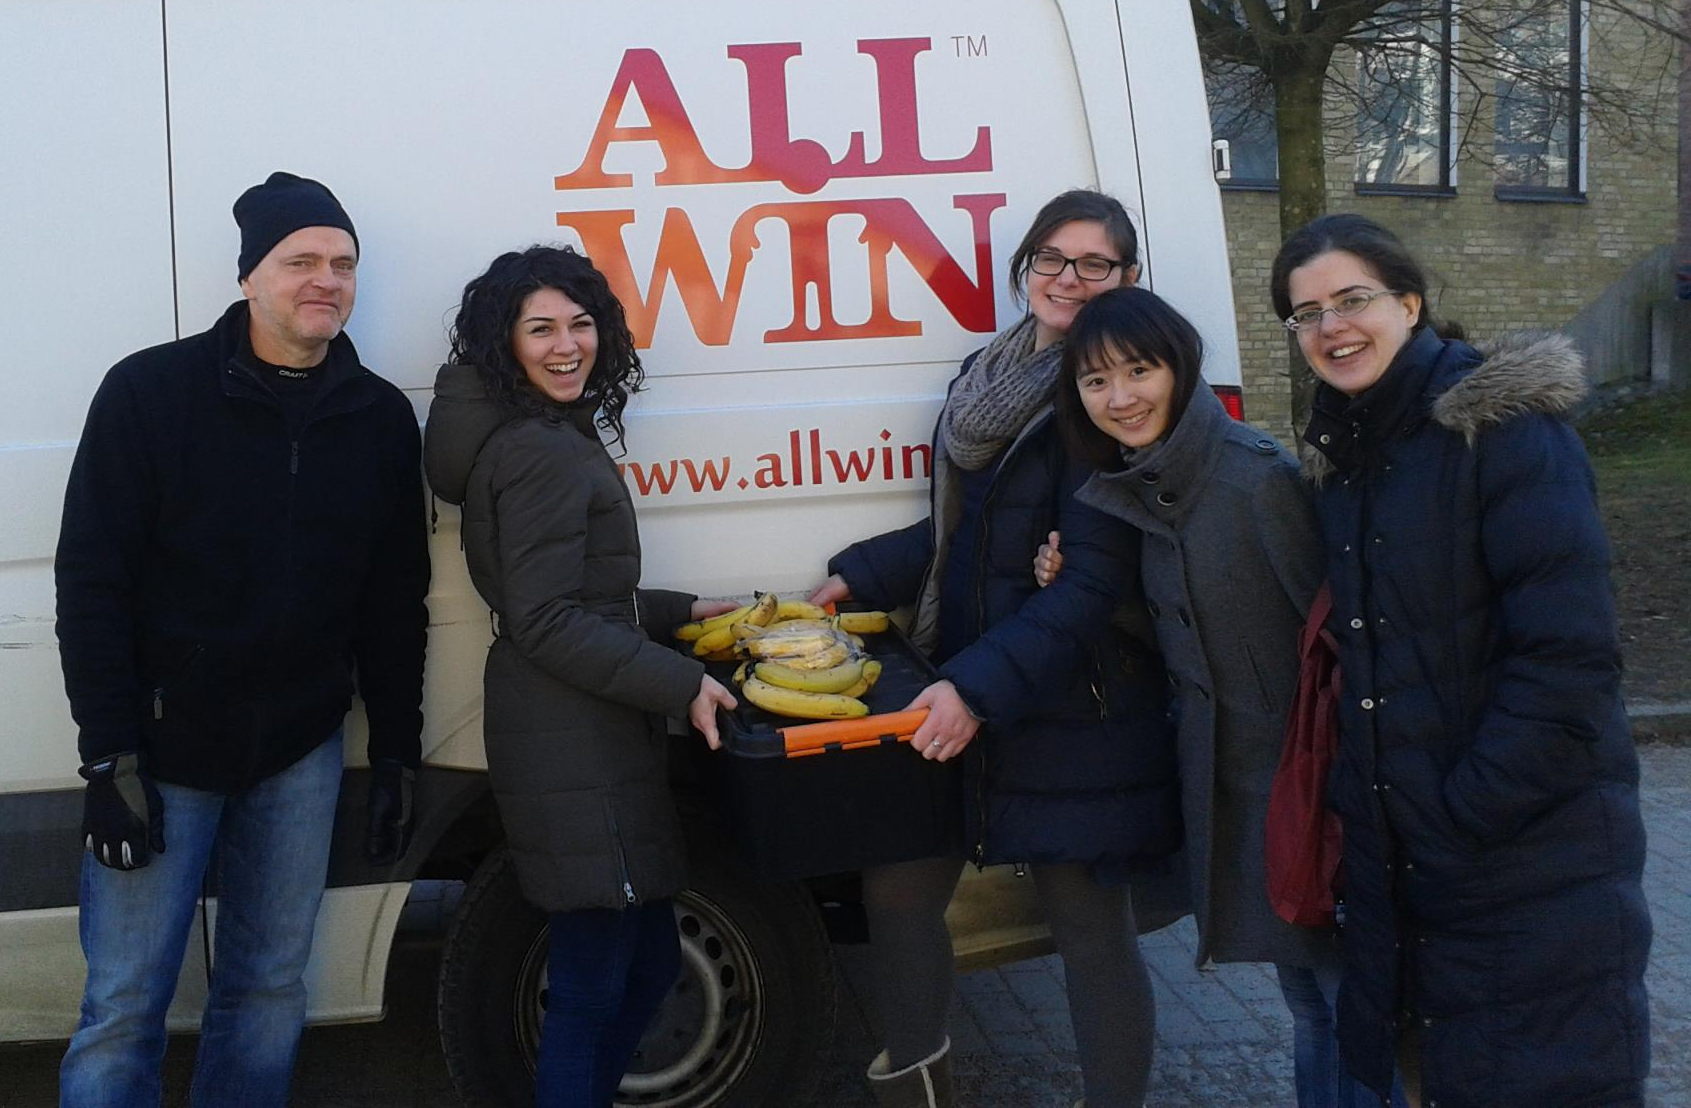 CSS' food project collaborates with AllWin